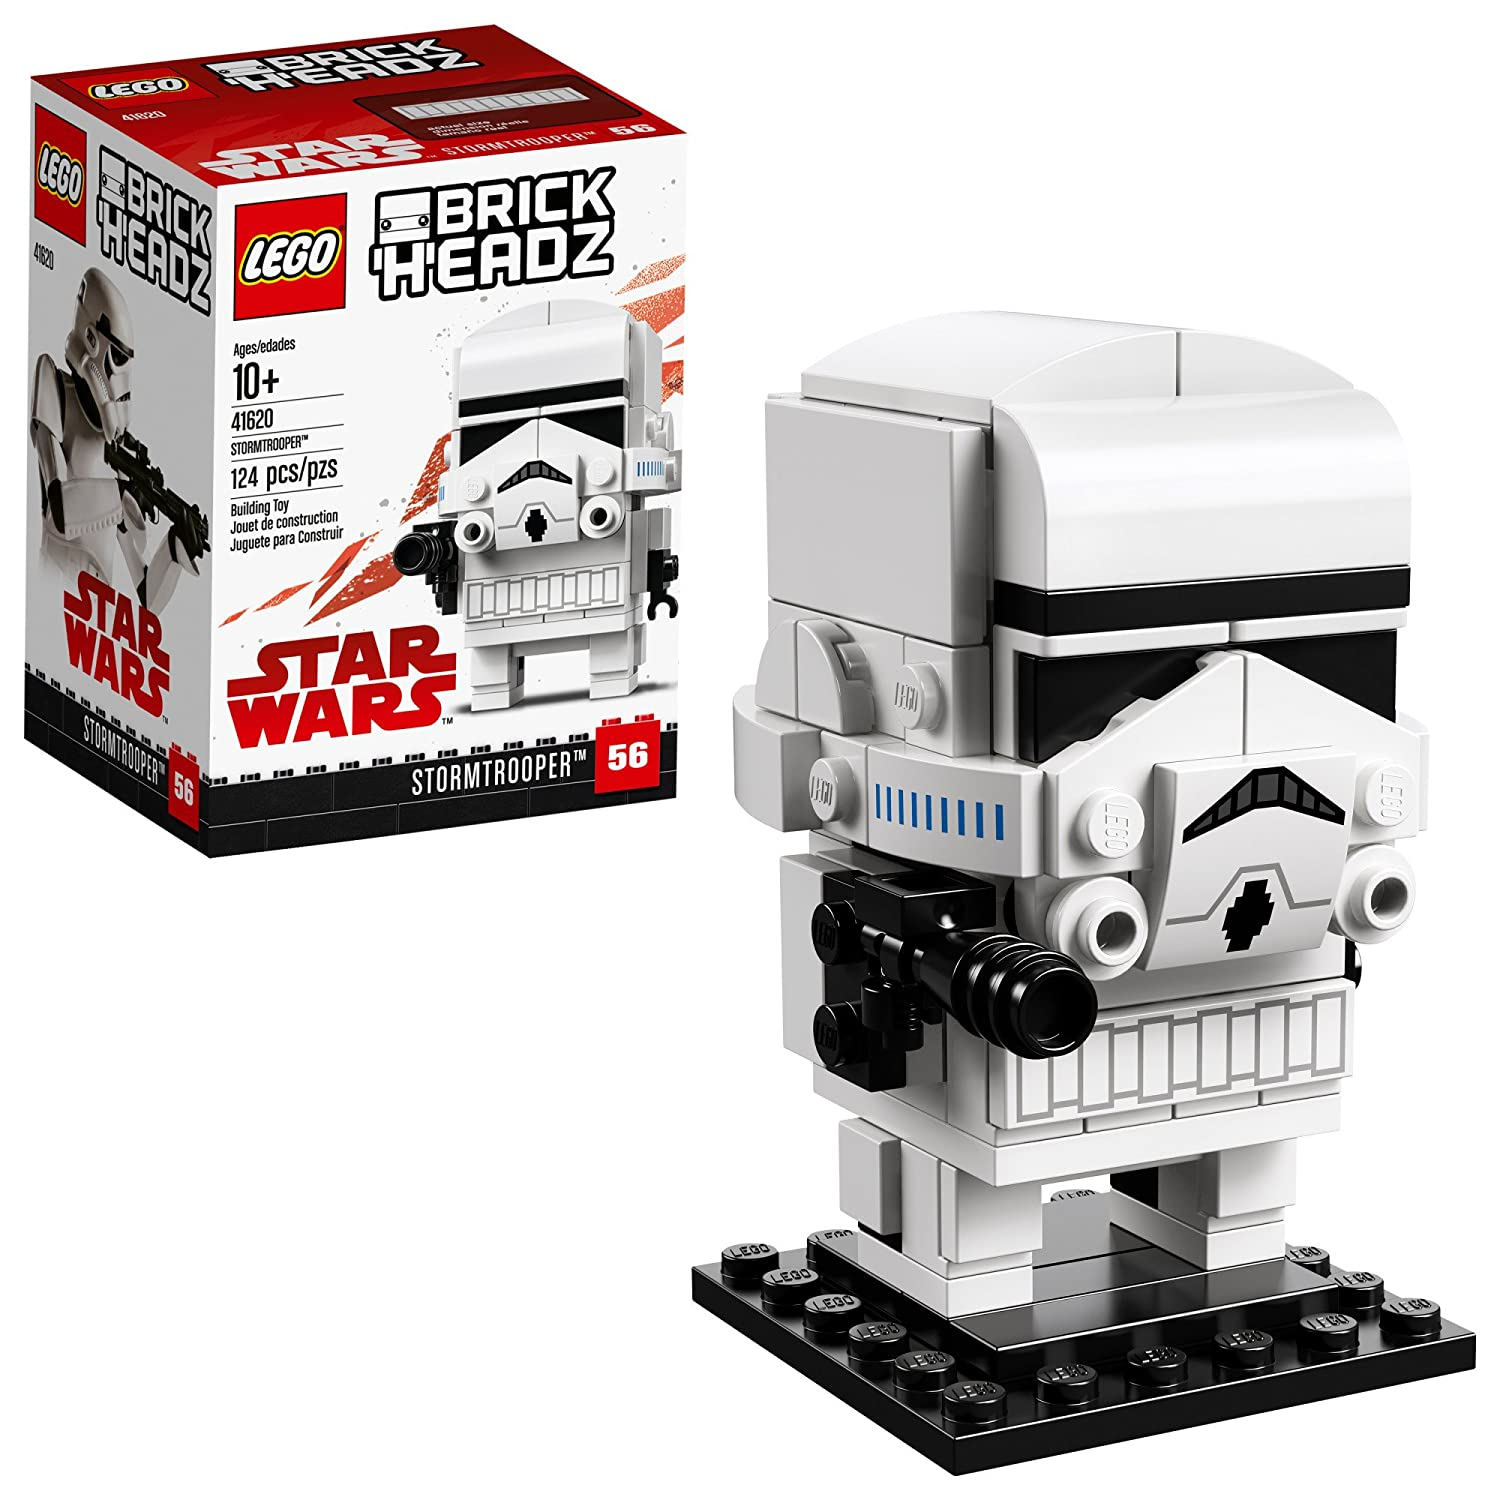 LEGO BrickHeadz Stormtrooper Building Kit (124 Piece), Multicolor 6225366